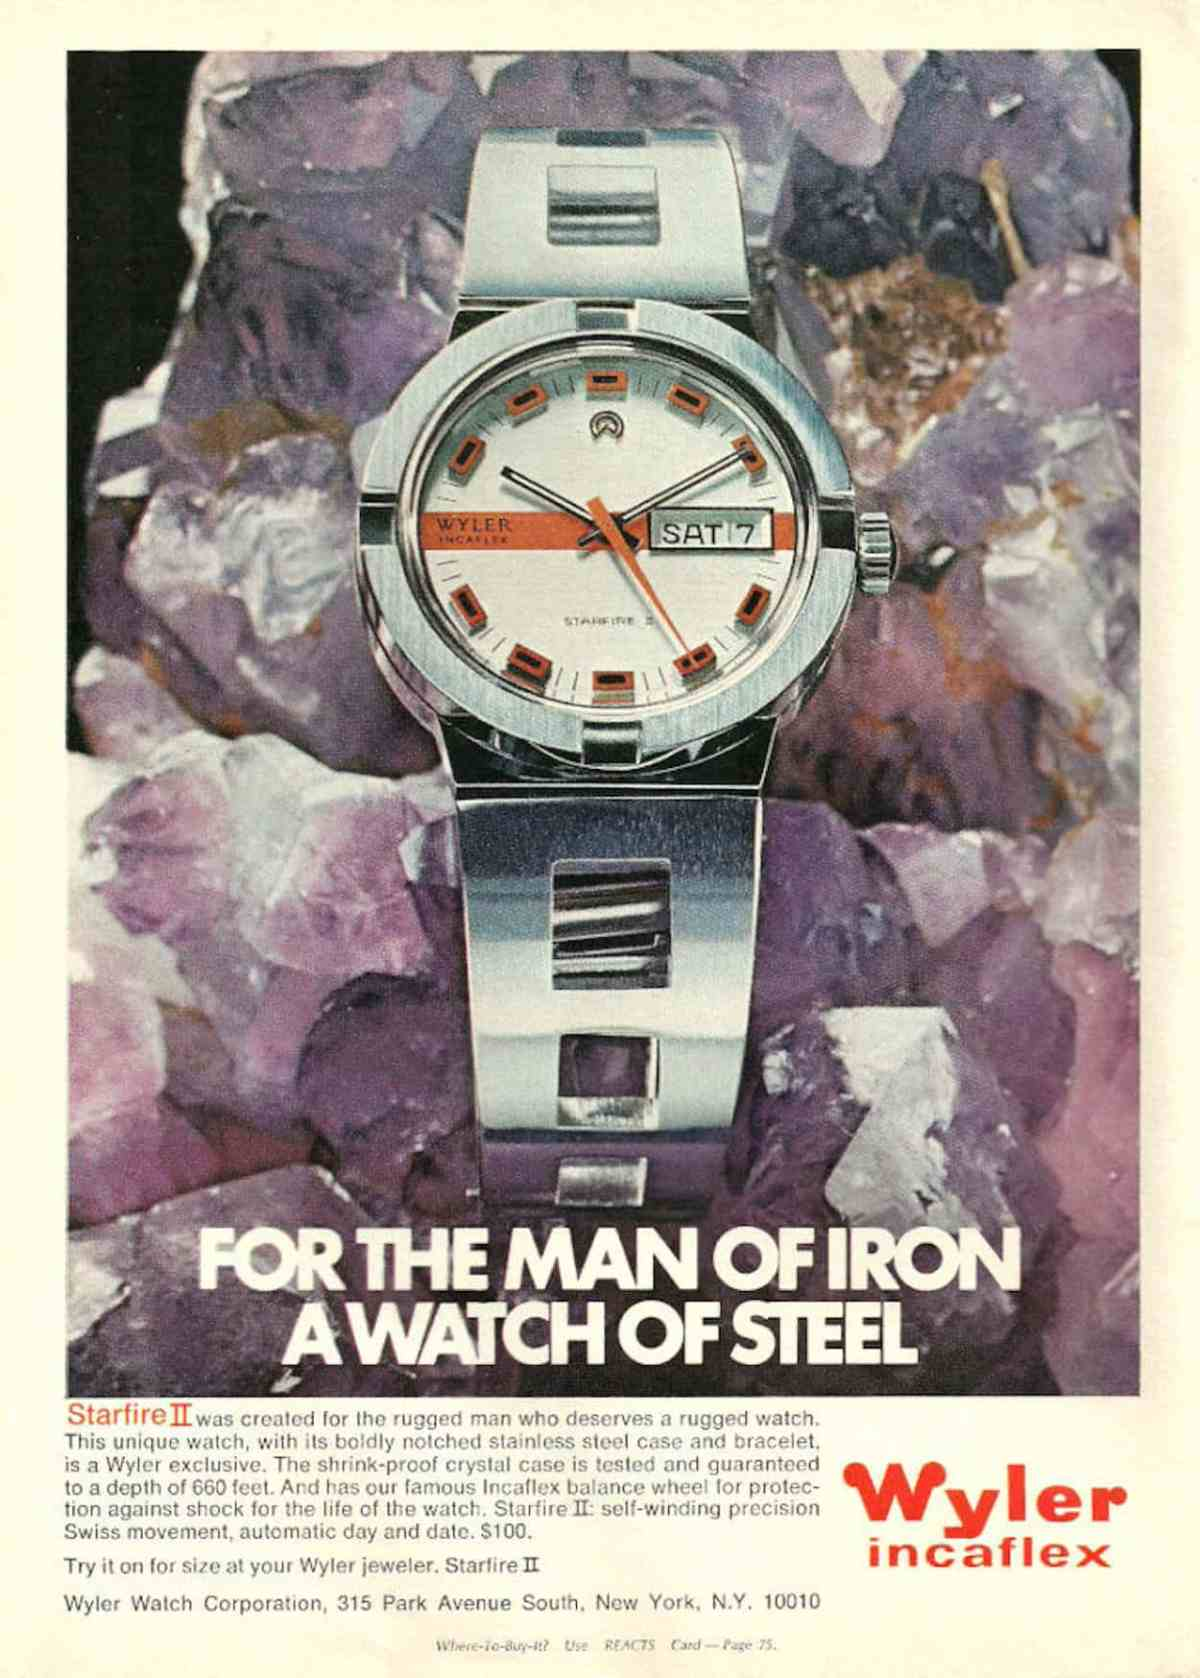 A Wyler ad discussing the warranty on its crystal